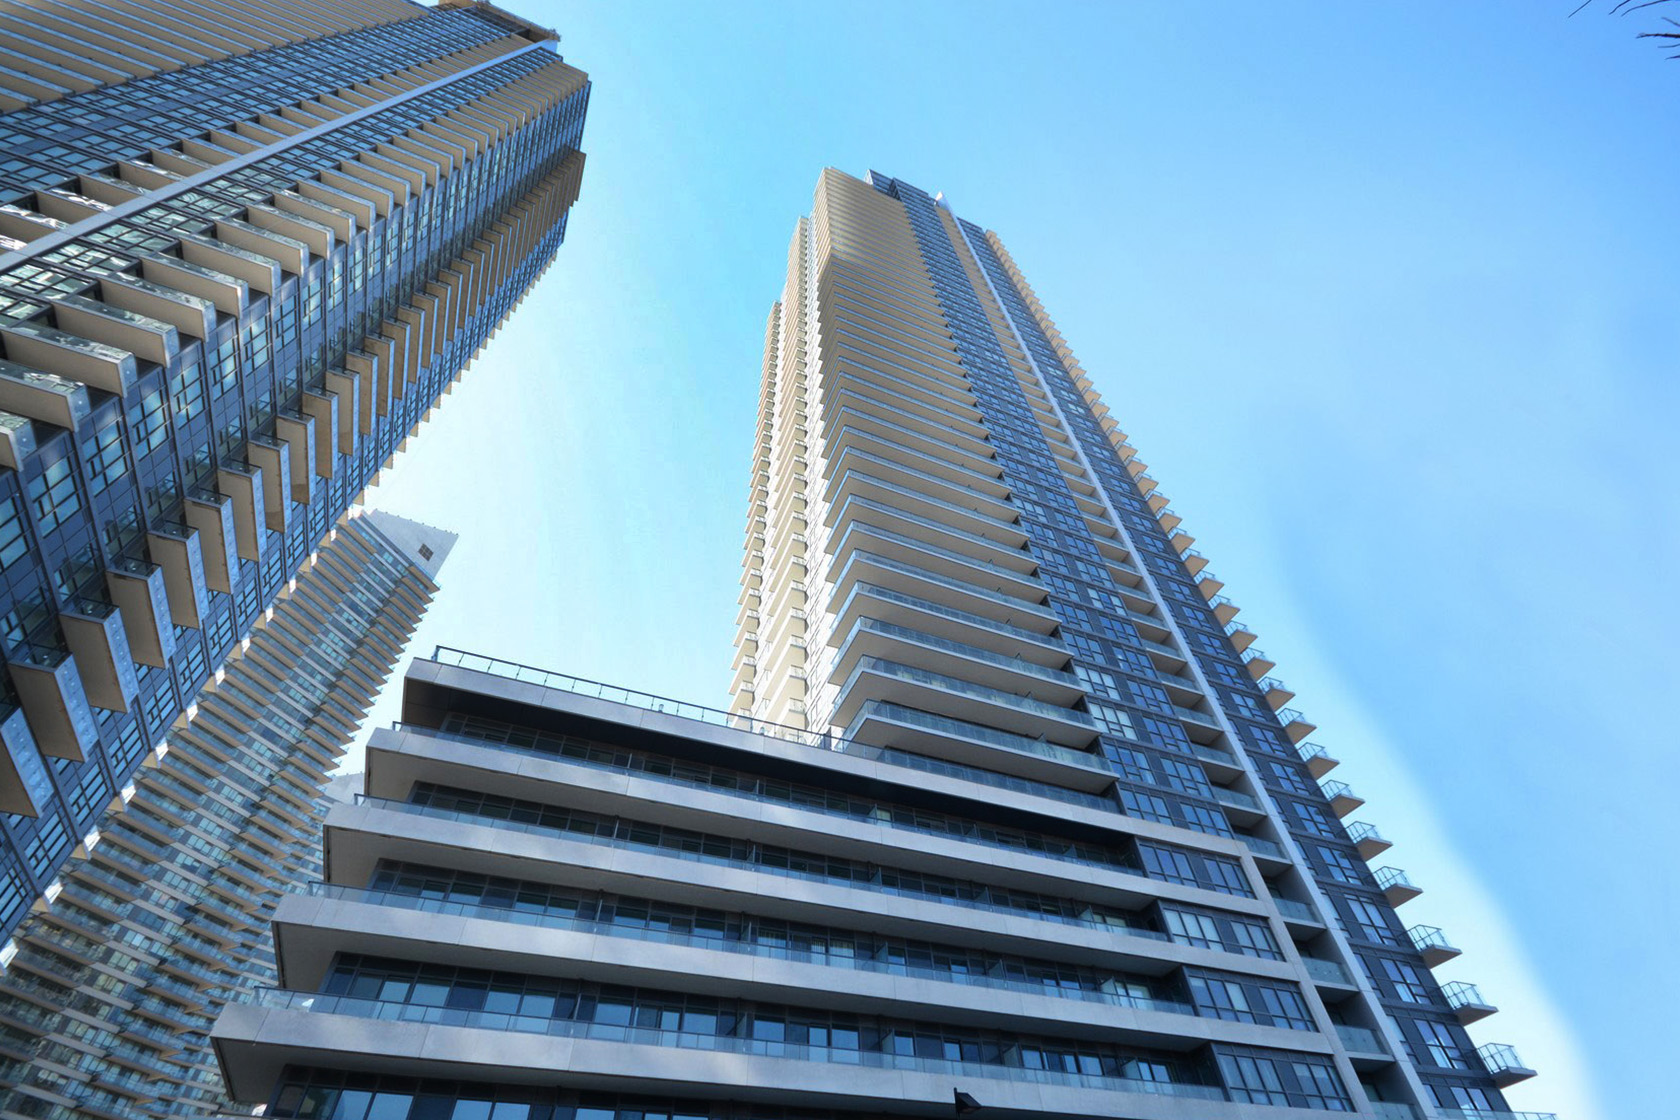 penthouses Top 4 Penthouses Under $1.1M in Mimico | June 2017 2220 lakeshore blvd w 2200 lakeshore blvd w 2212 lakeshore blvd w westlake condos etobicoke lakeshore parklawn penthouses